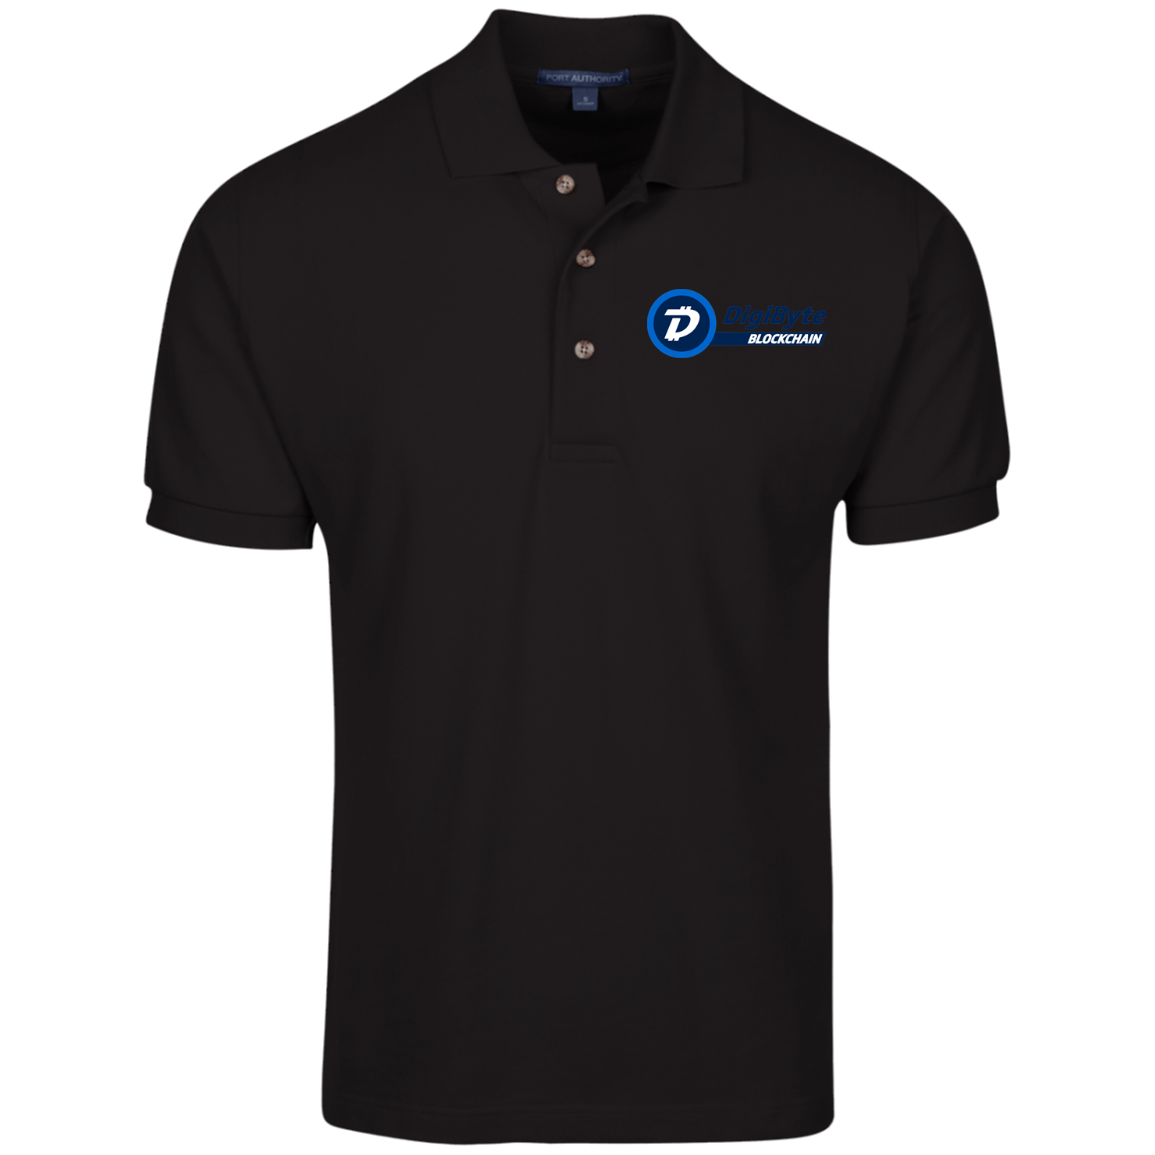 DigiByte Pure – Embroidered Cotton Polo by Port Authority (Dark)